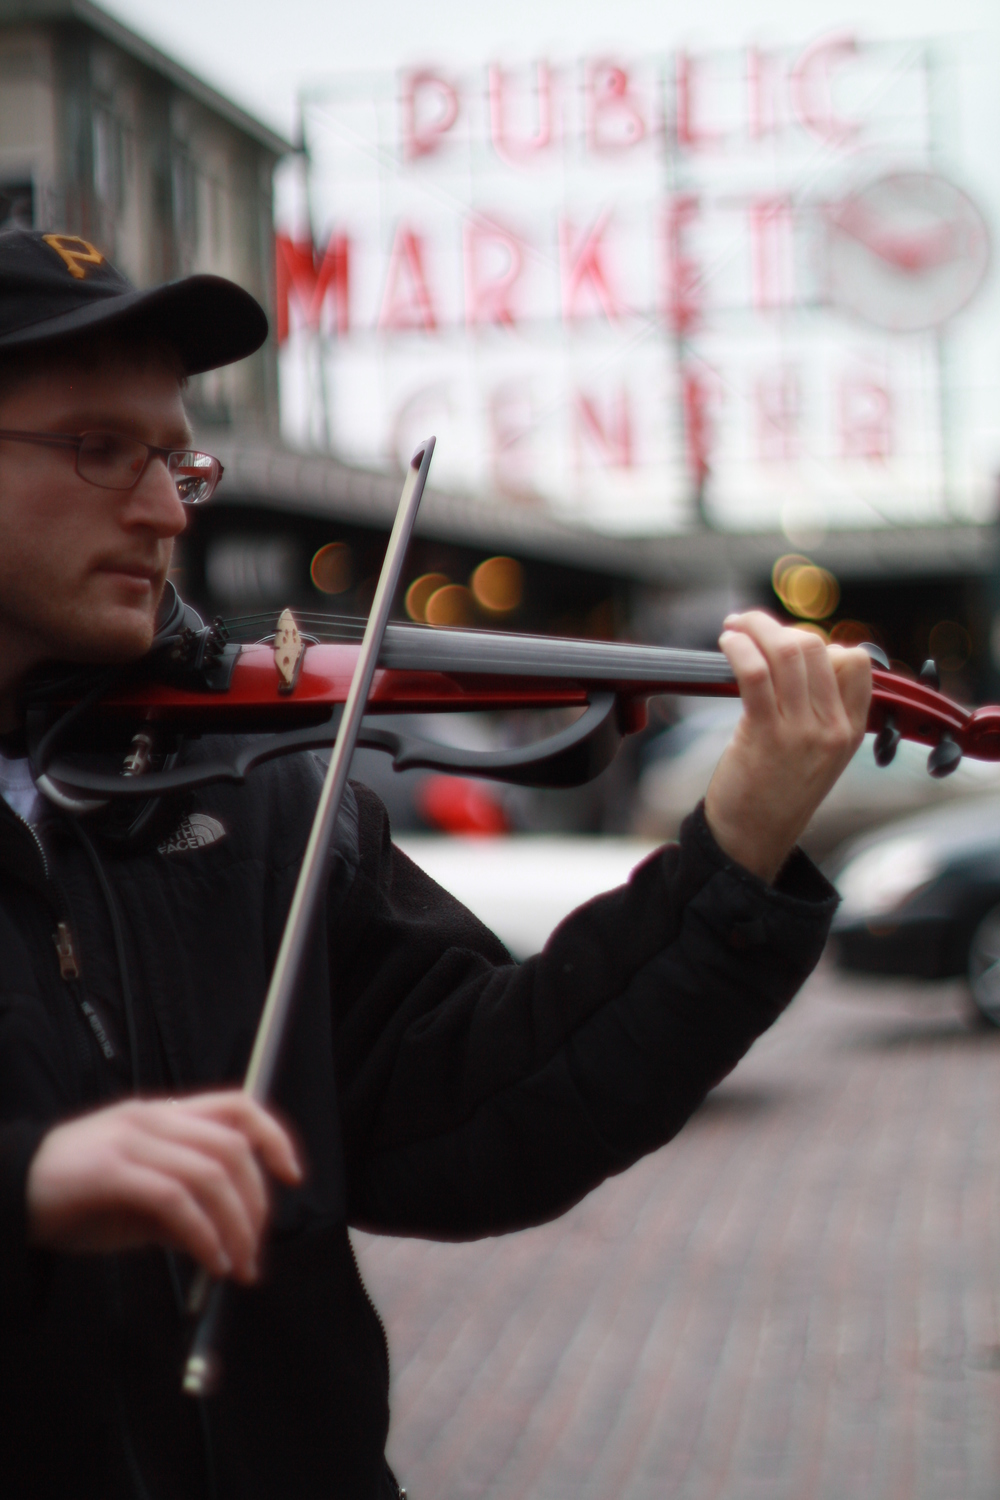 Busking near Pike Place Market in Seattle